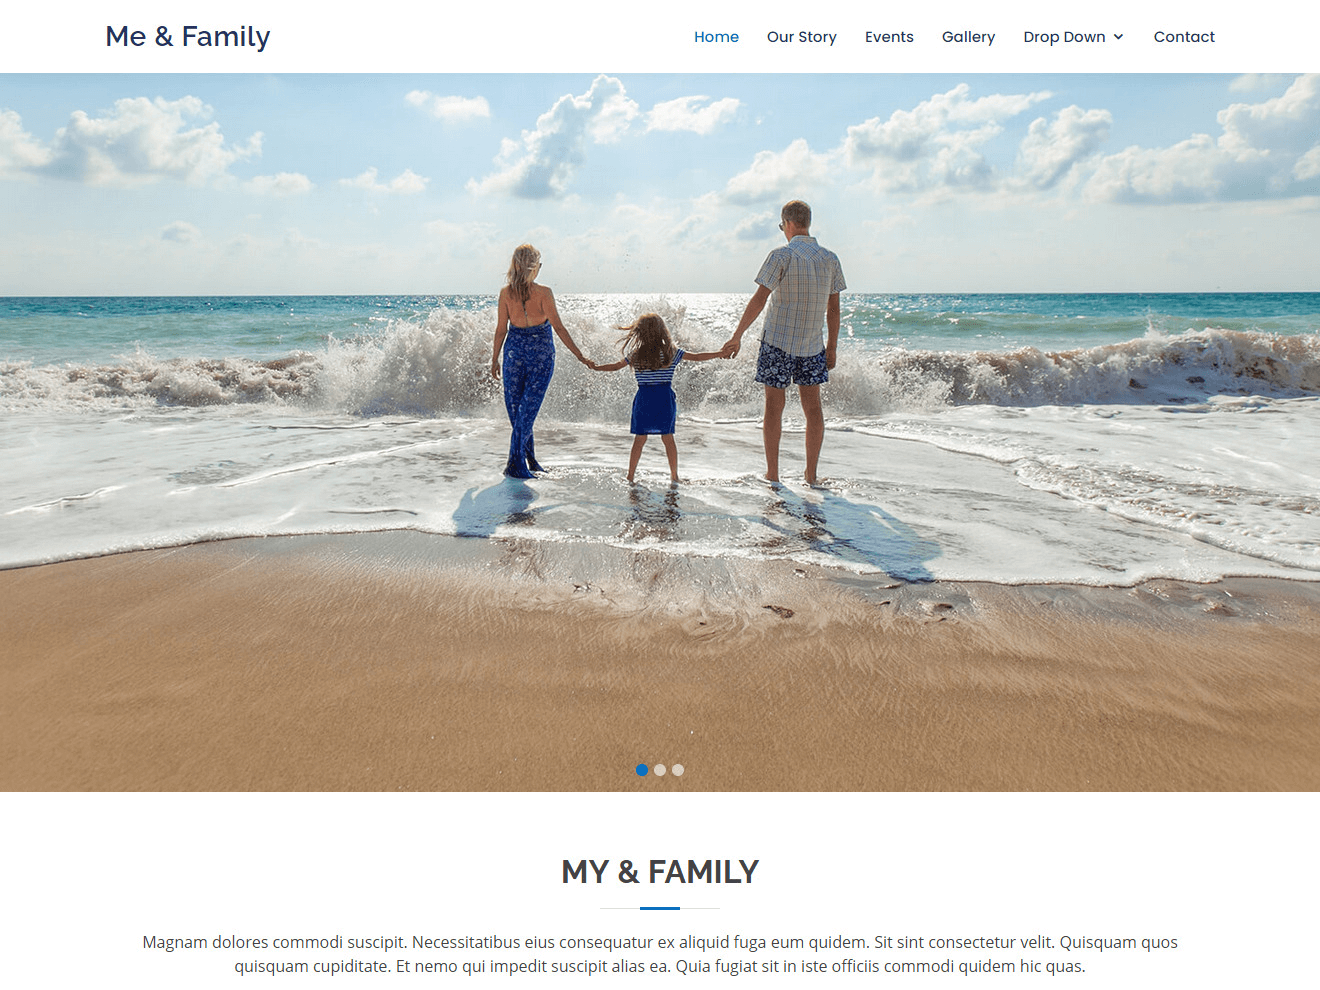 MeFamily Theme